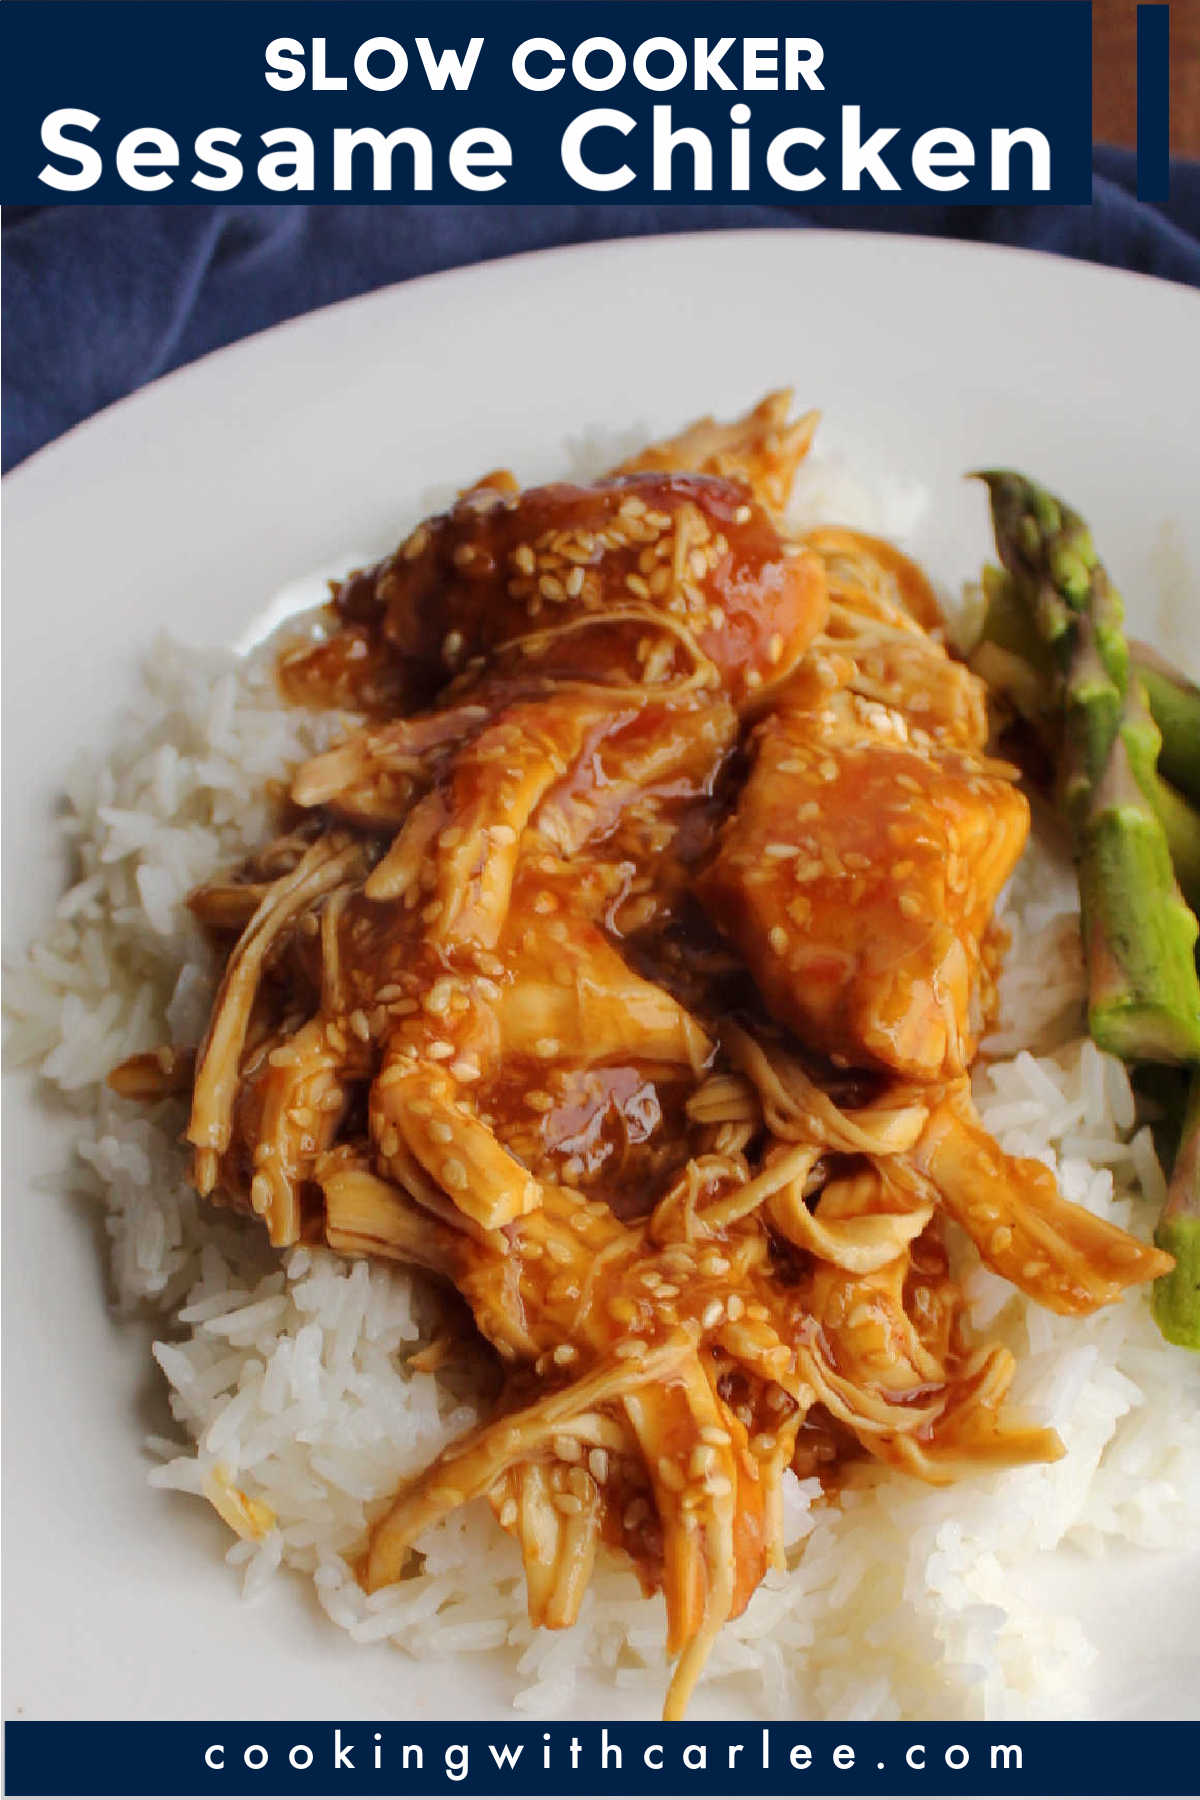 Sweet, salty and umami collide in this easy slow cooker sesame chicken. Serve it over rice for a flavorful weeknight meal.